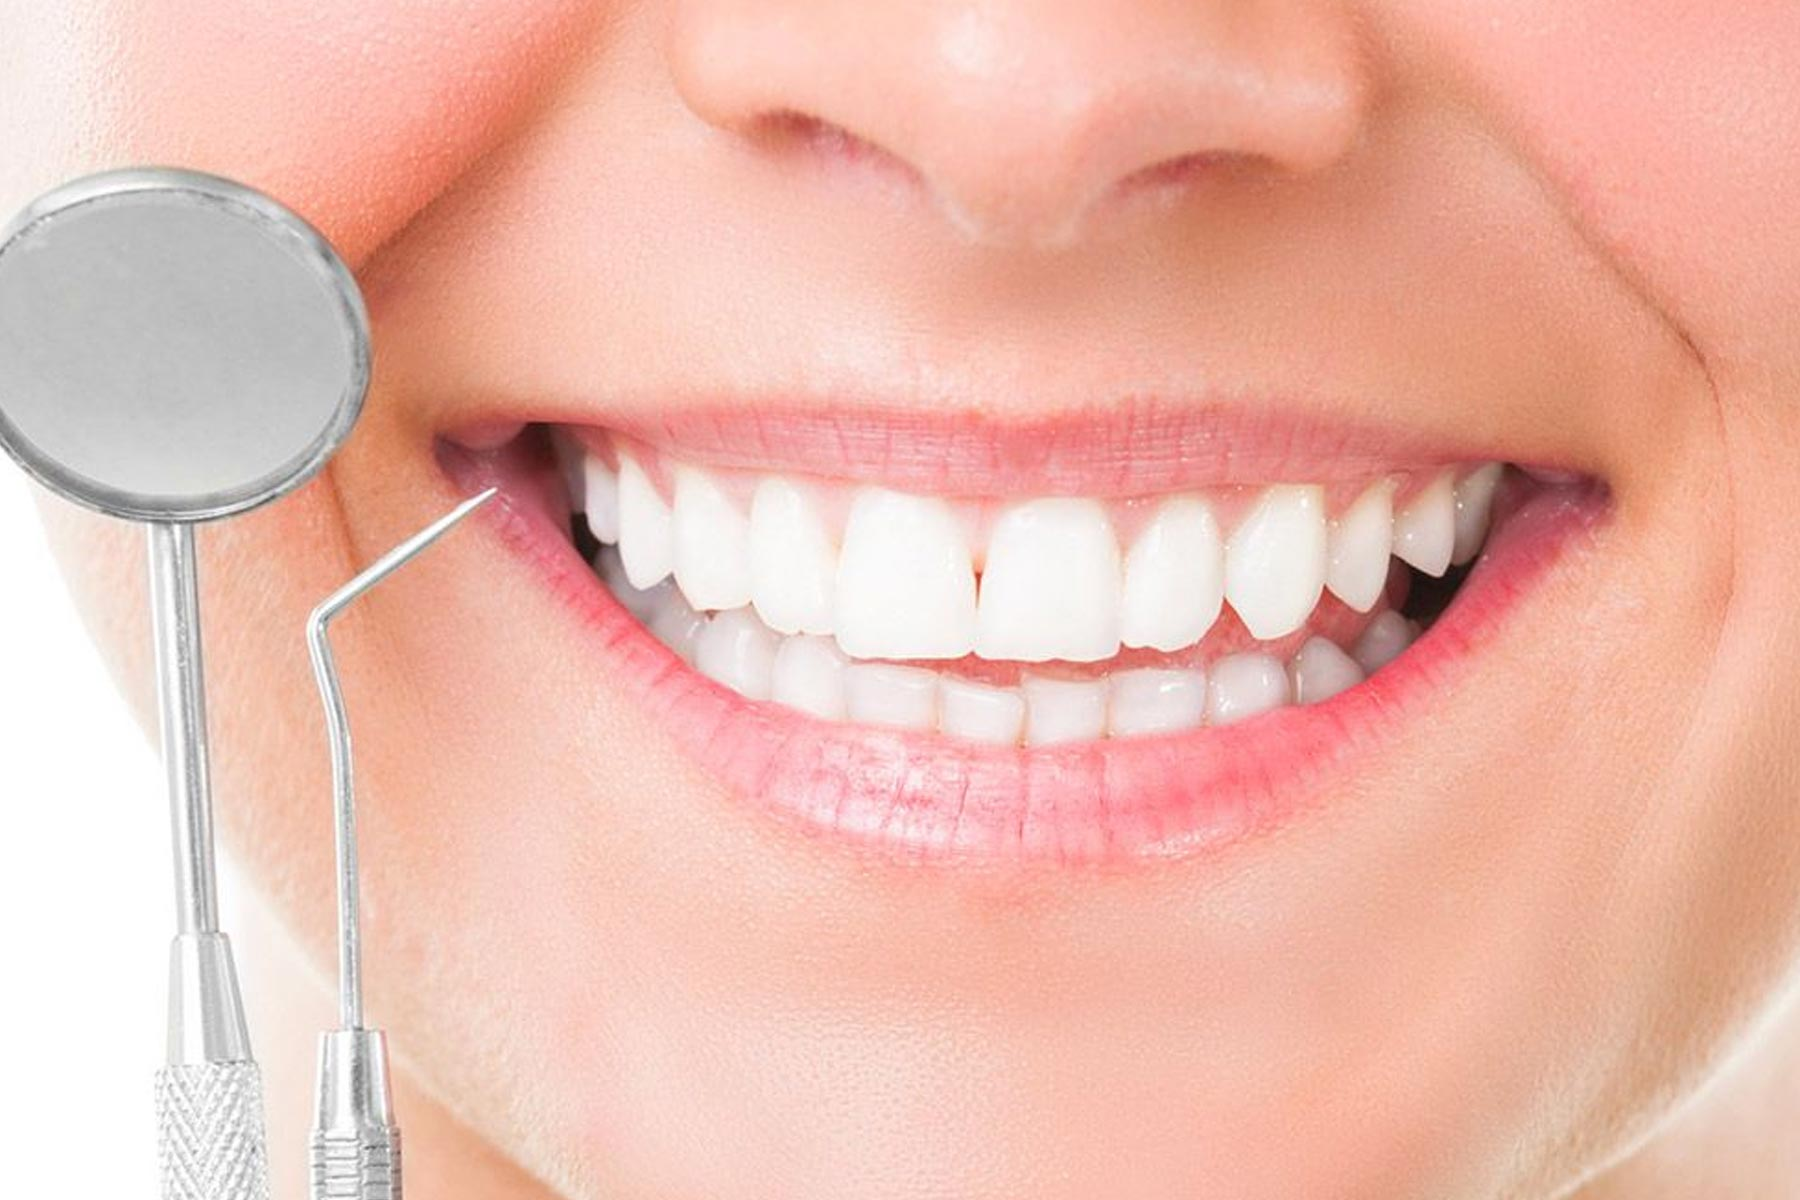 Close up picture of smiling mouth with oral hygiene instruments used by dentist